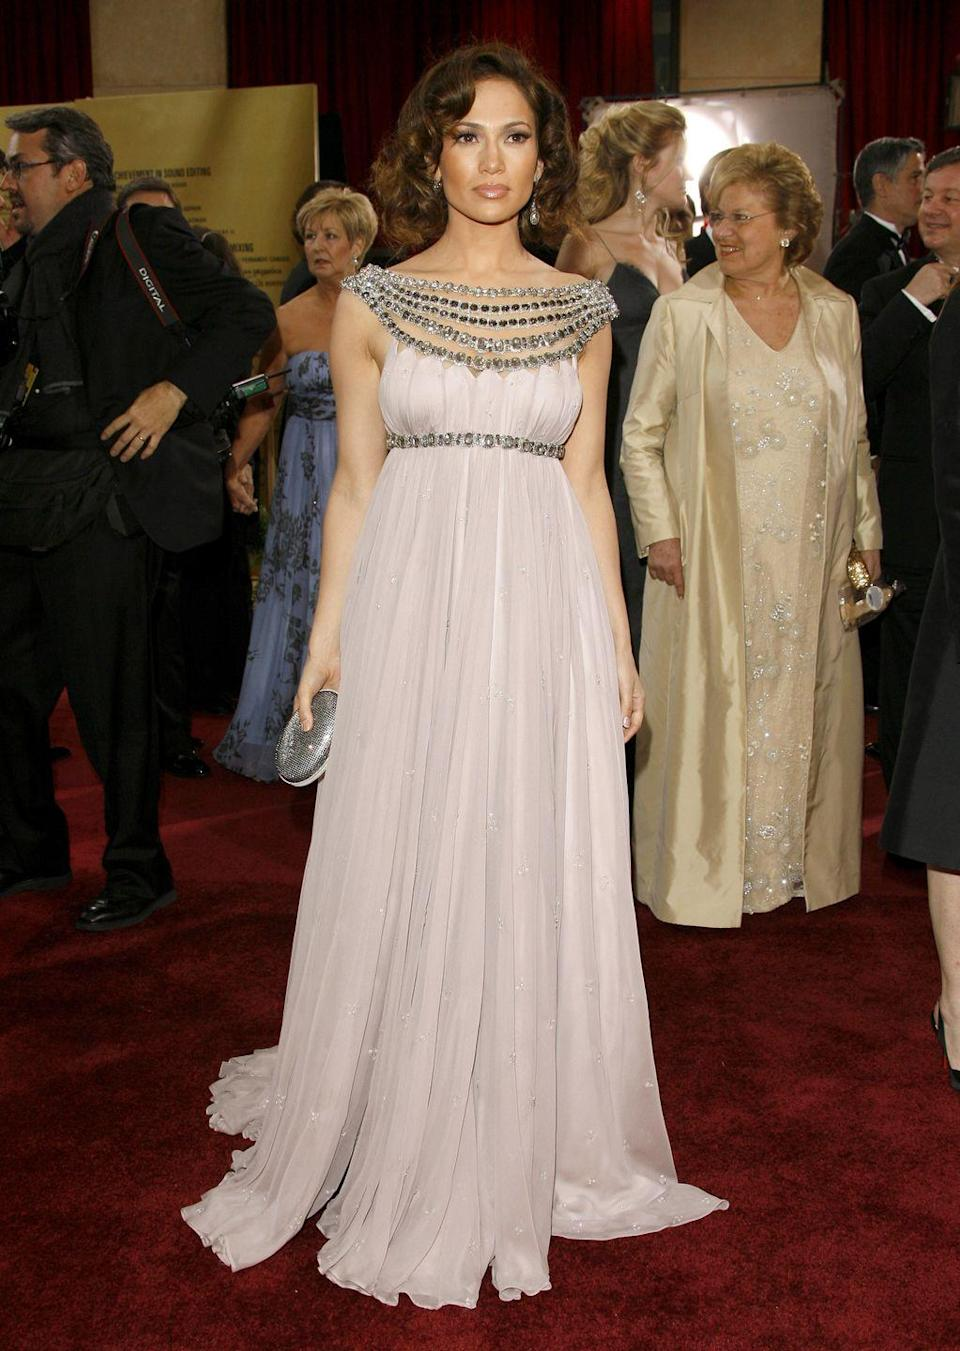 <p><strong>When: </strong>February 2007</p><p><strong>Where: </strong>The Academy Awards</p><p><strong>Wearing: </strong>Marchesa</p>